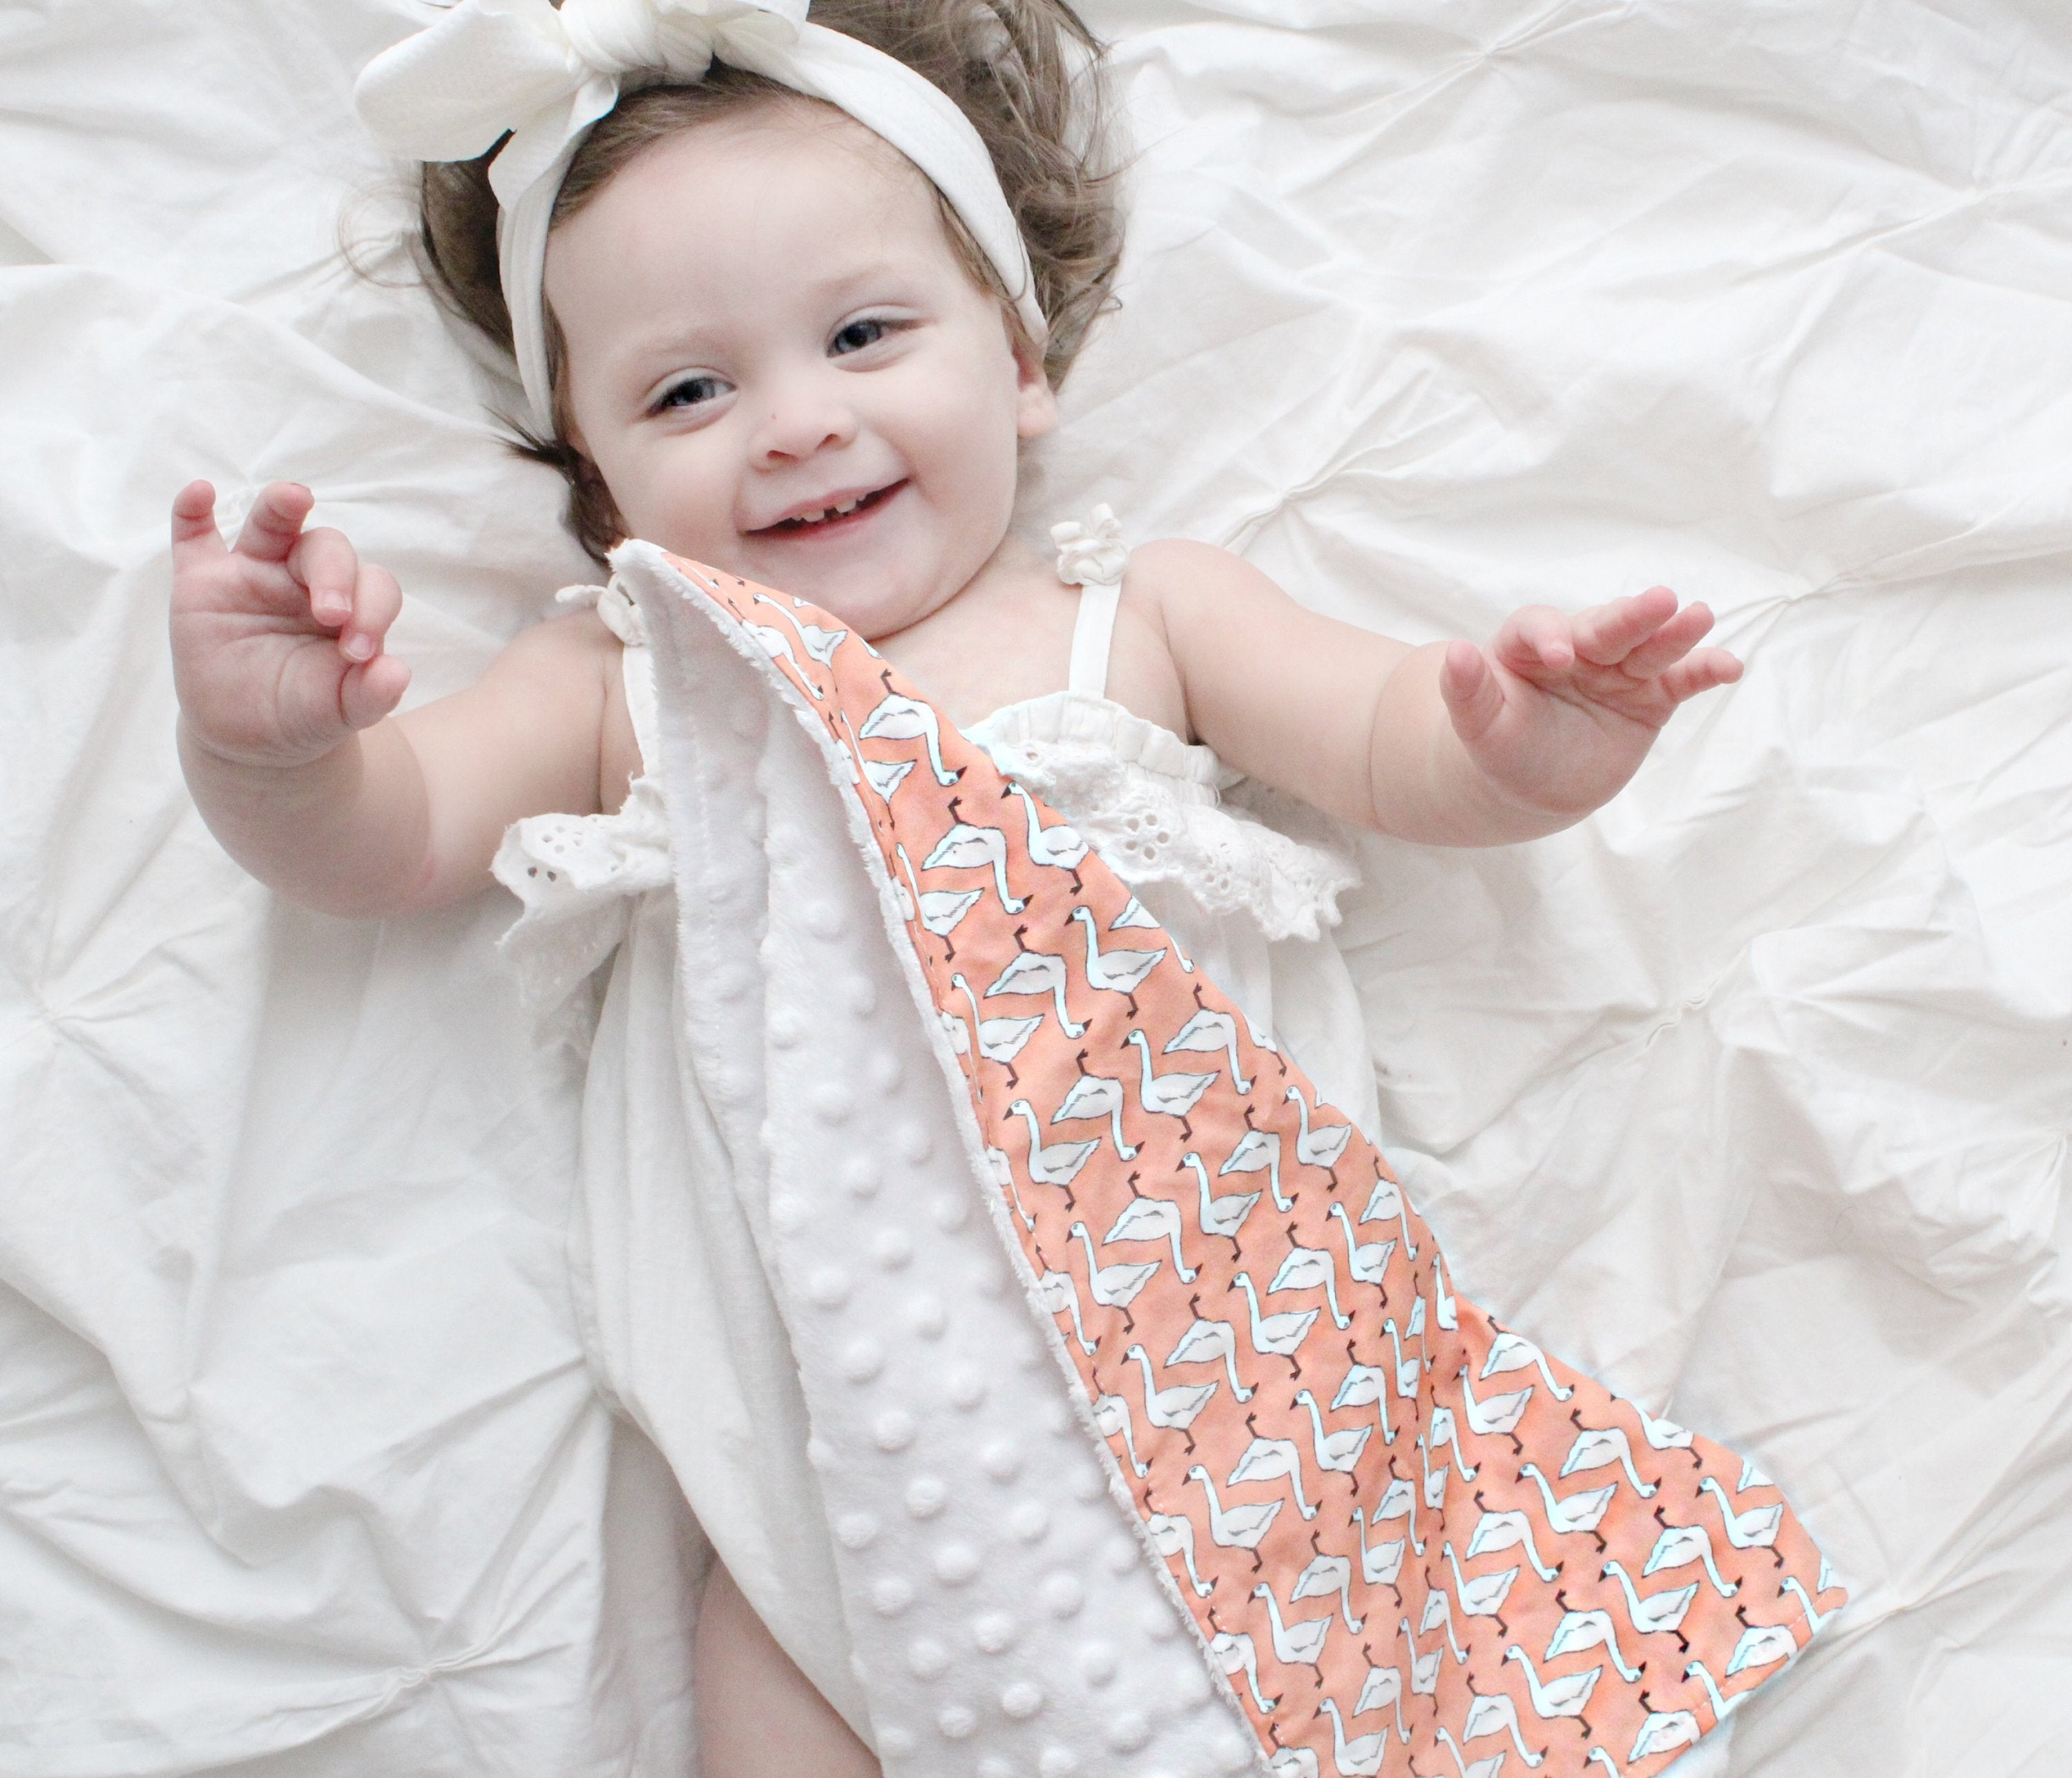 Goose Baby Blanket Pink Geese - Orange Blossom Special  @orangeblossomspecial805